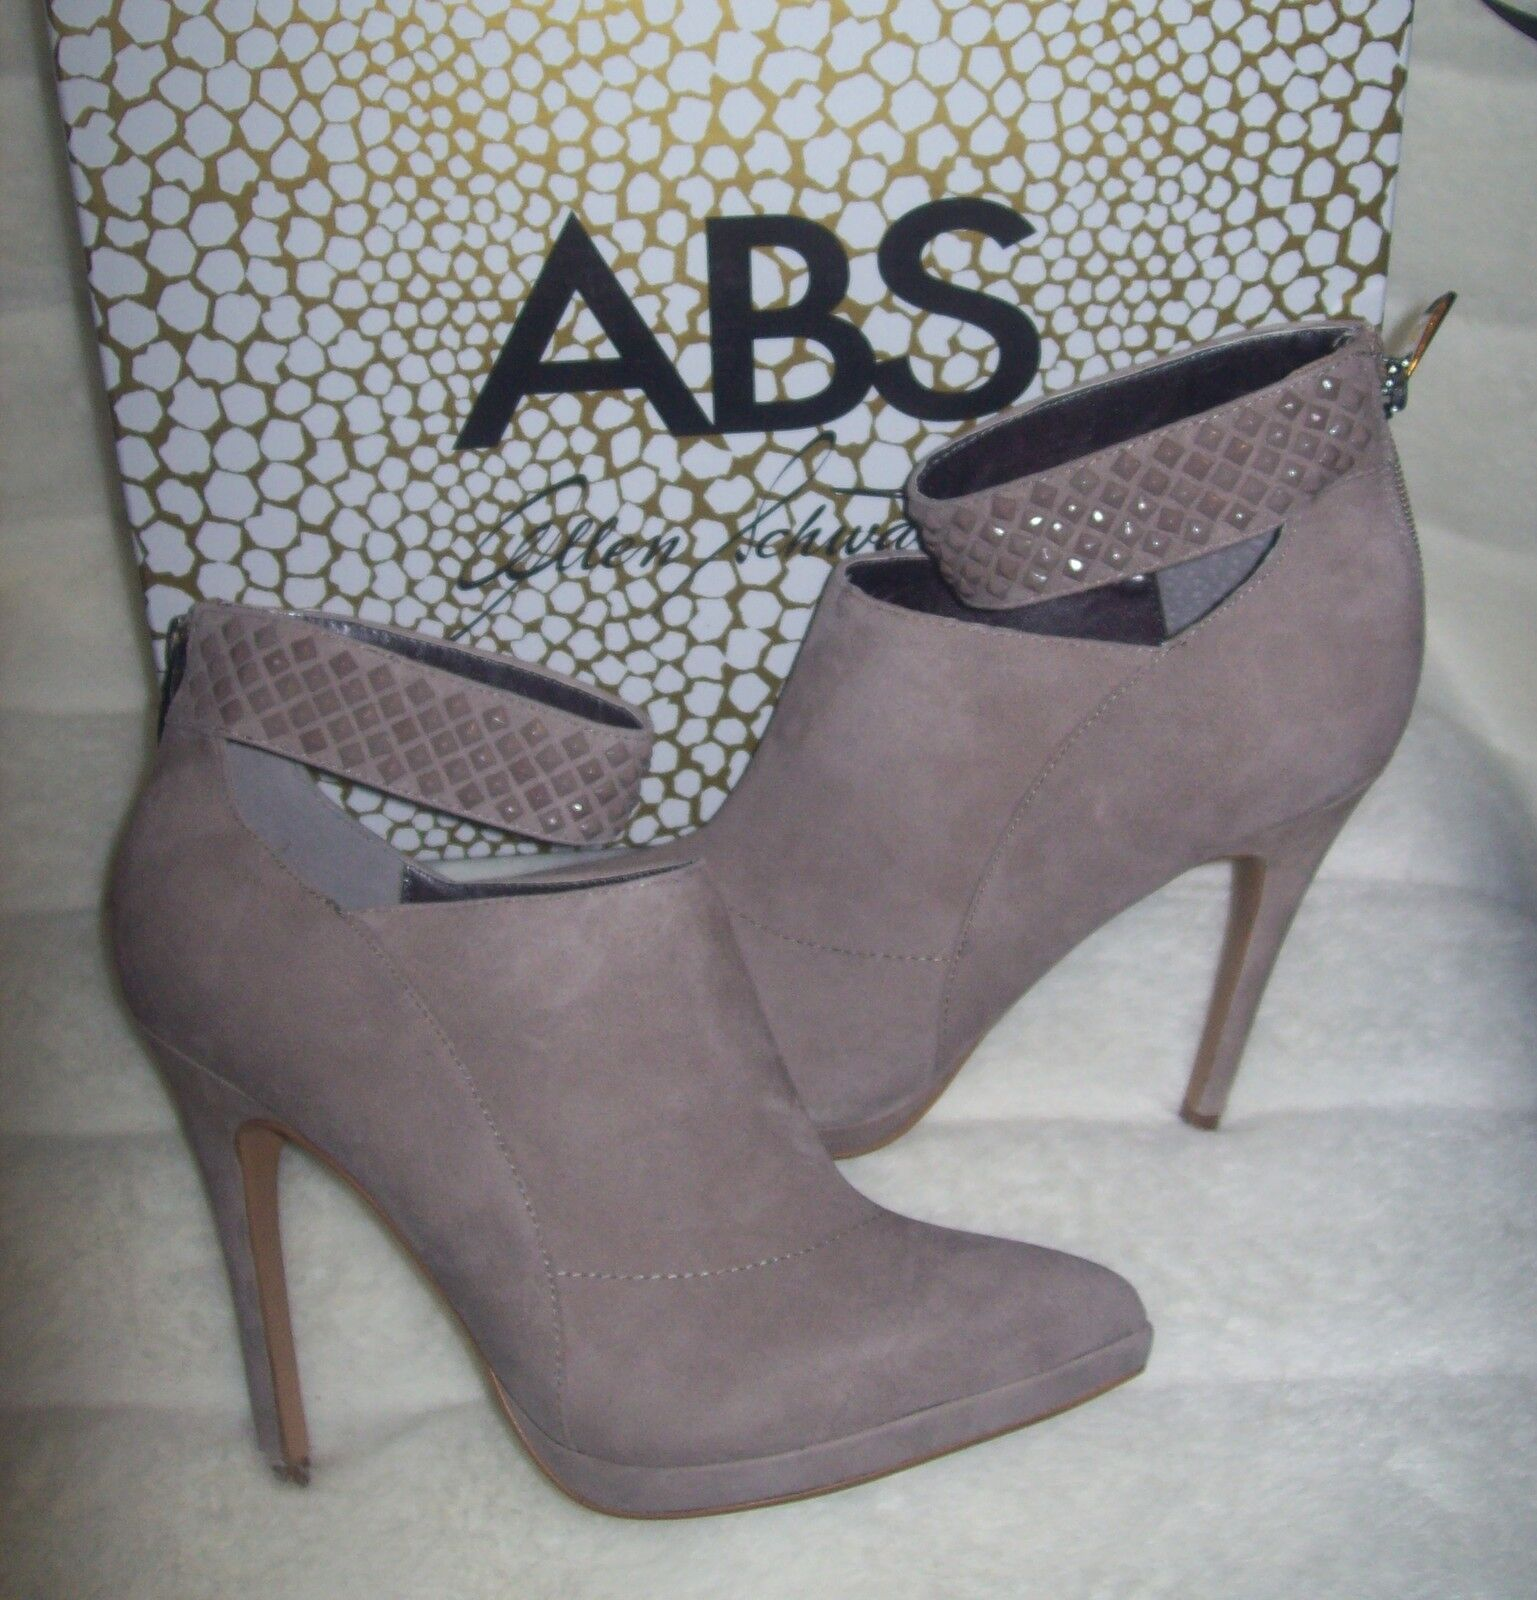 ABS by Allen Schwartz LENNA BOOTIE taupe STUDDED ANKLE STRAP boots 8.5 NEW